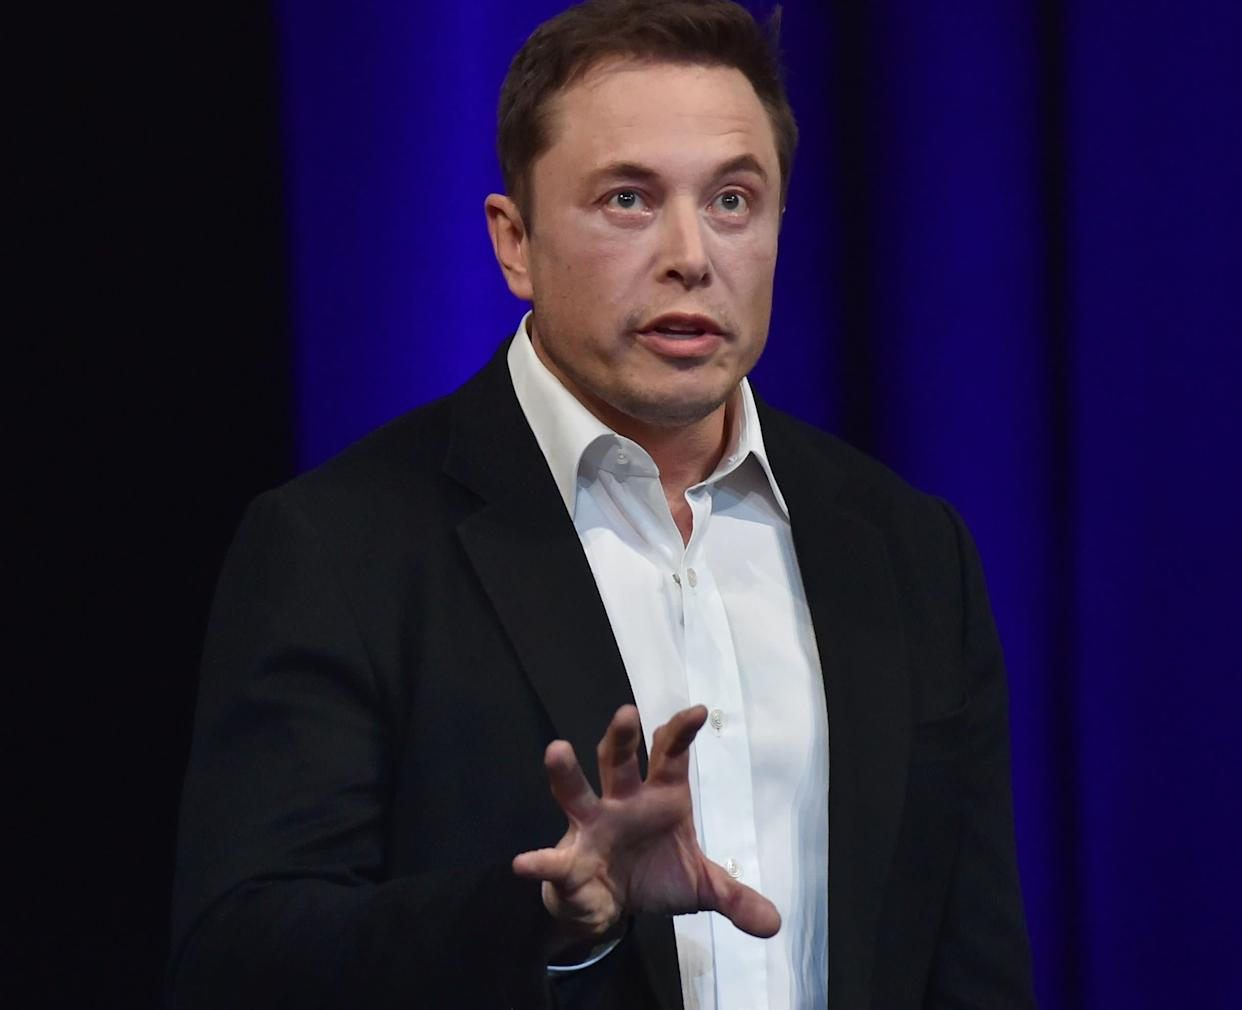 Billionaire entrepreneur Elon Musk said on Friday that his company, SpaceX, has begun work on an Interplanetary Transport System. (Photo: PETER PARKS via Getty Images)